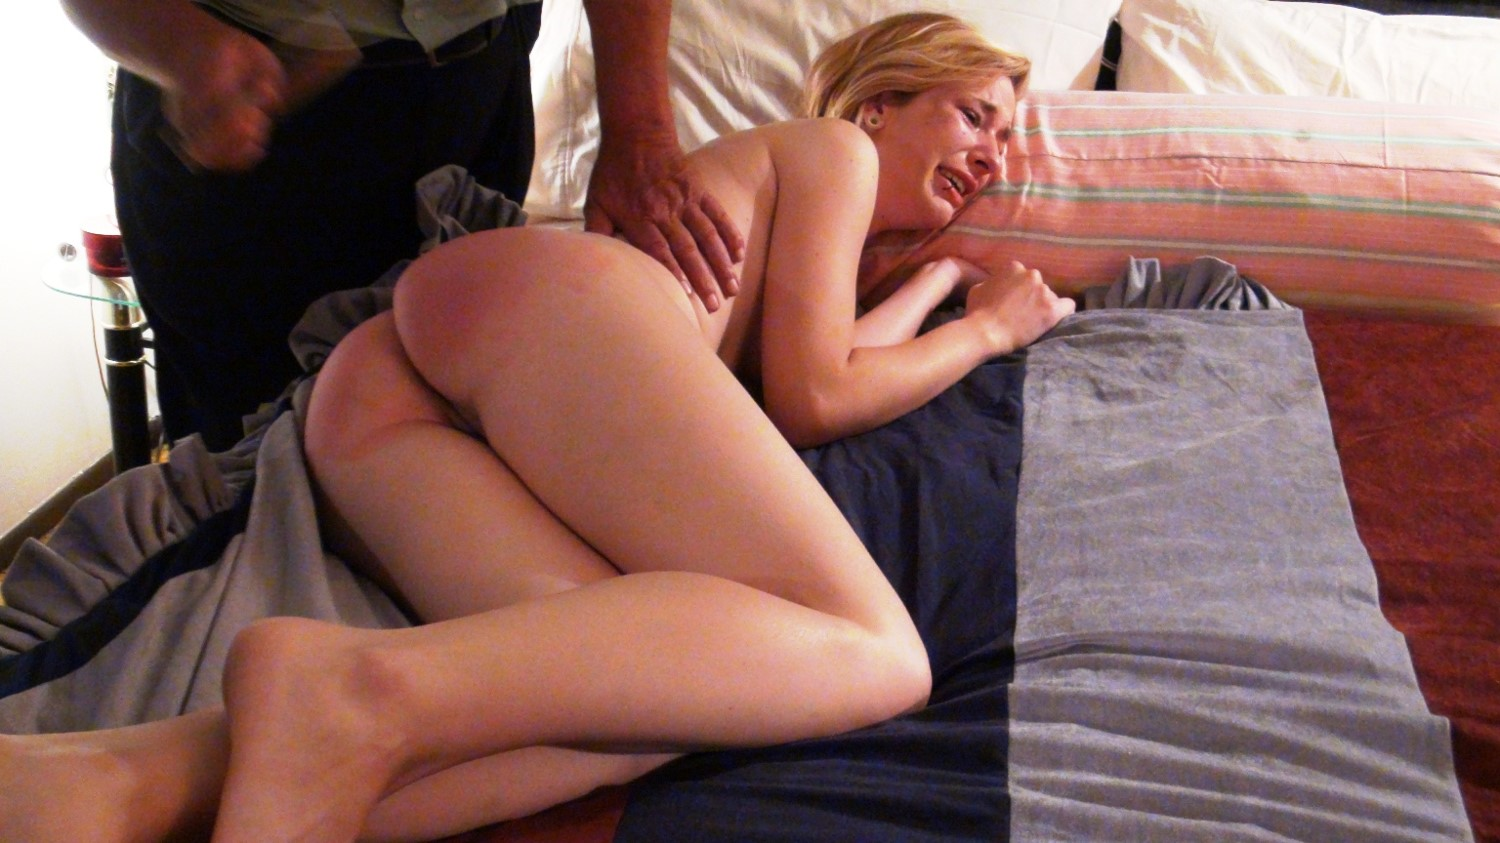 Bare bottom spanking sex stories